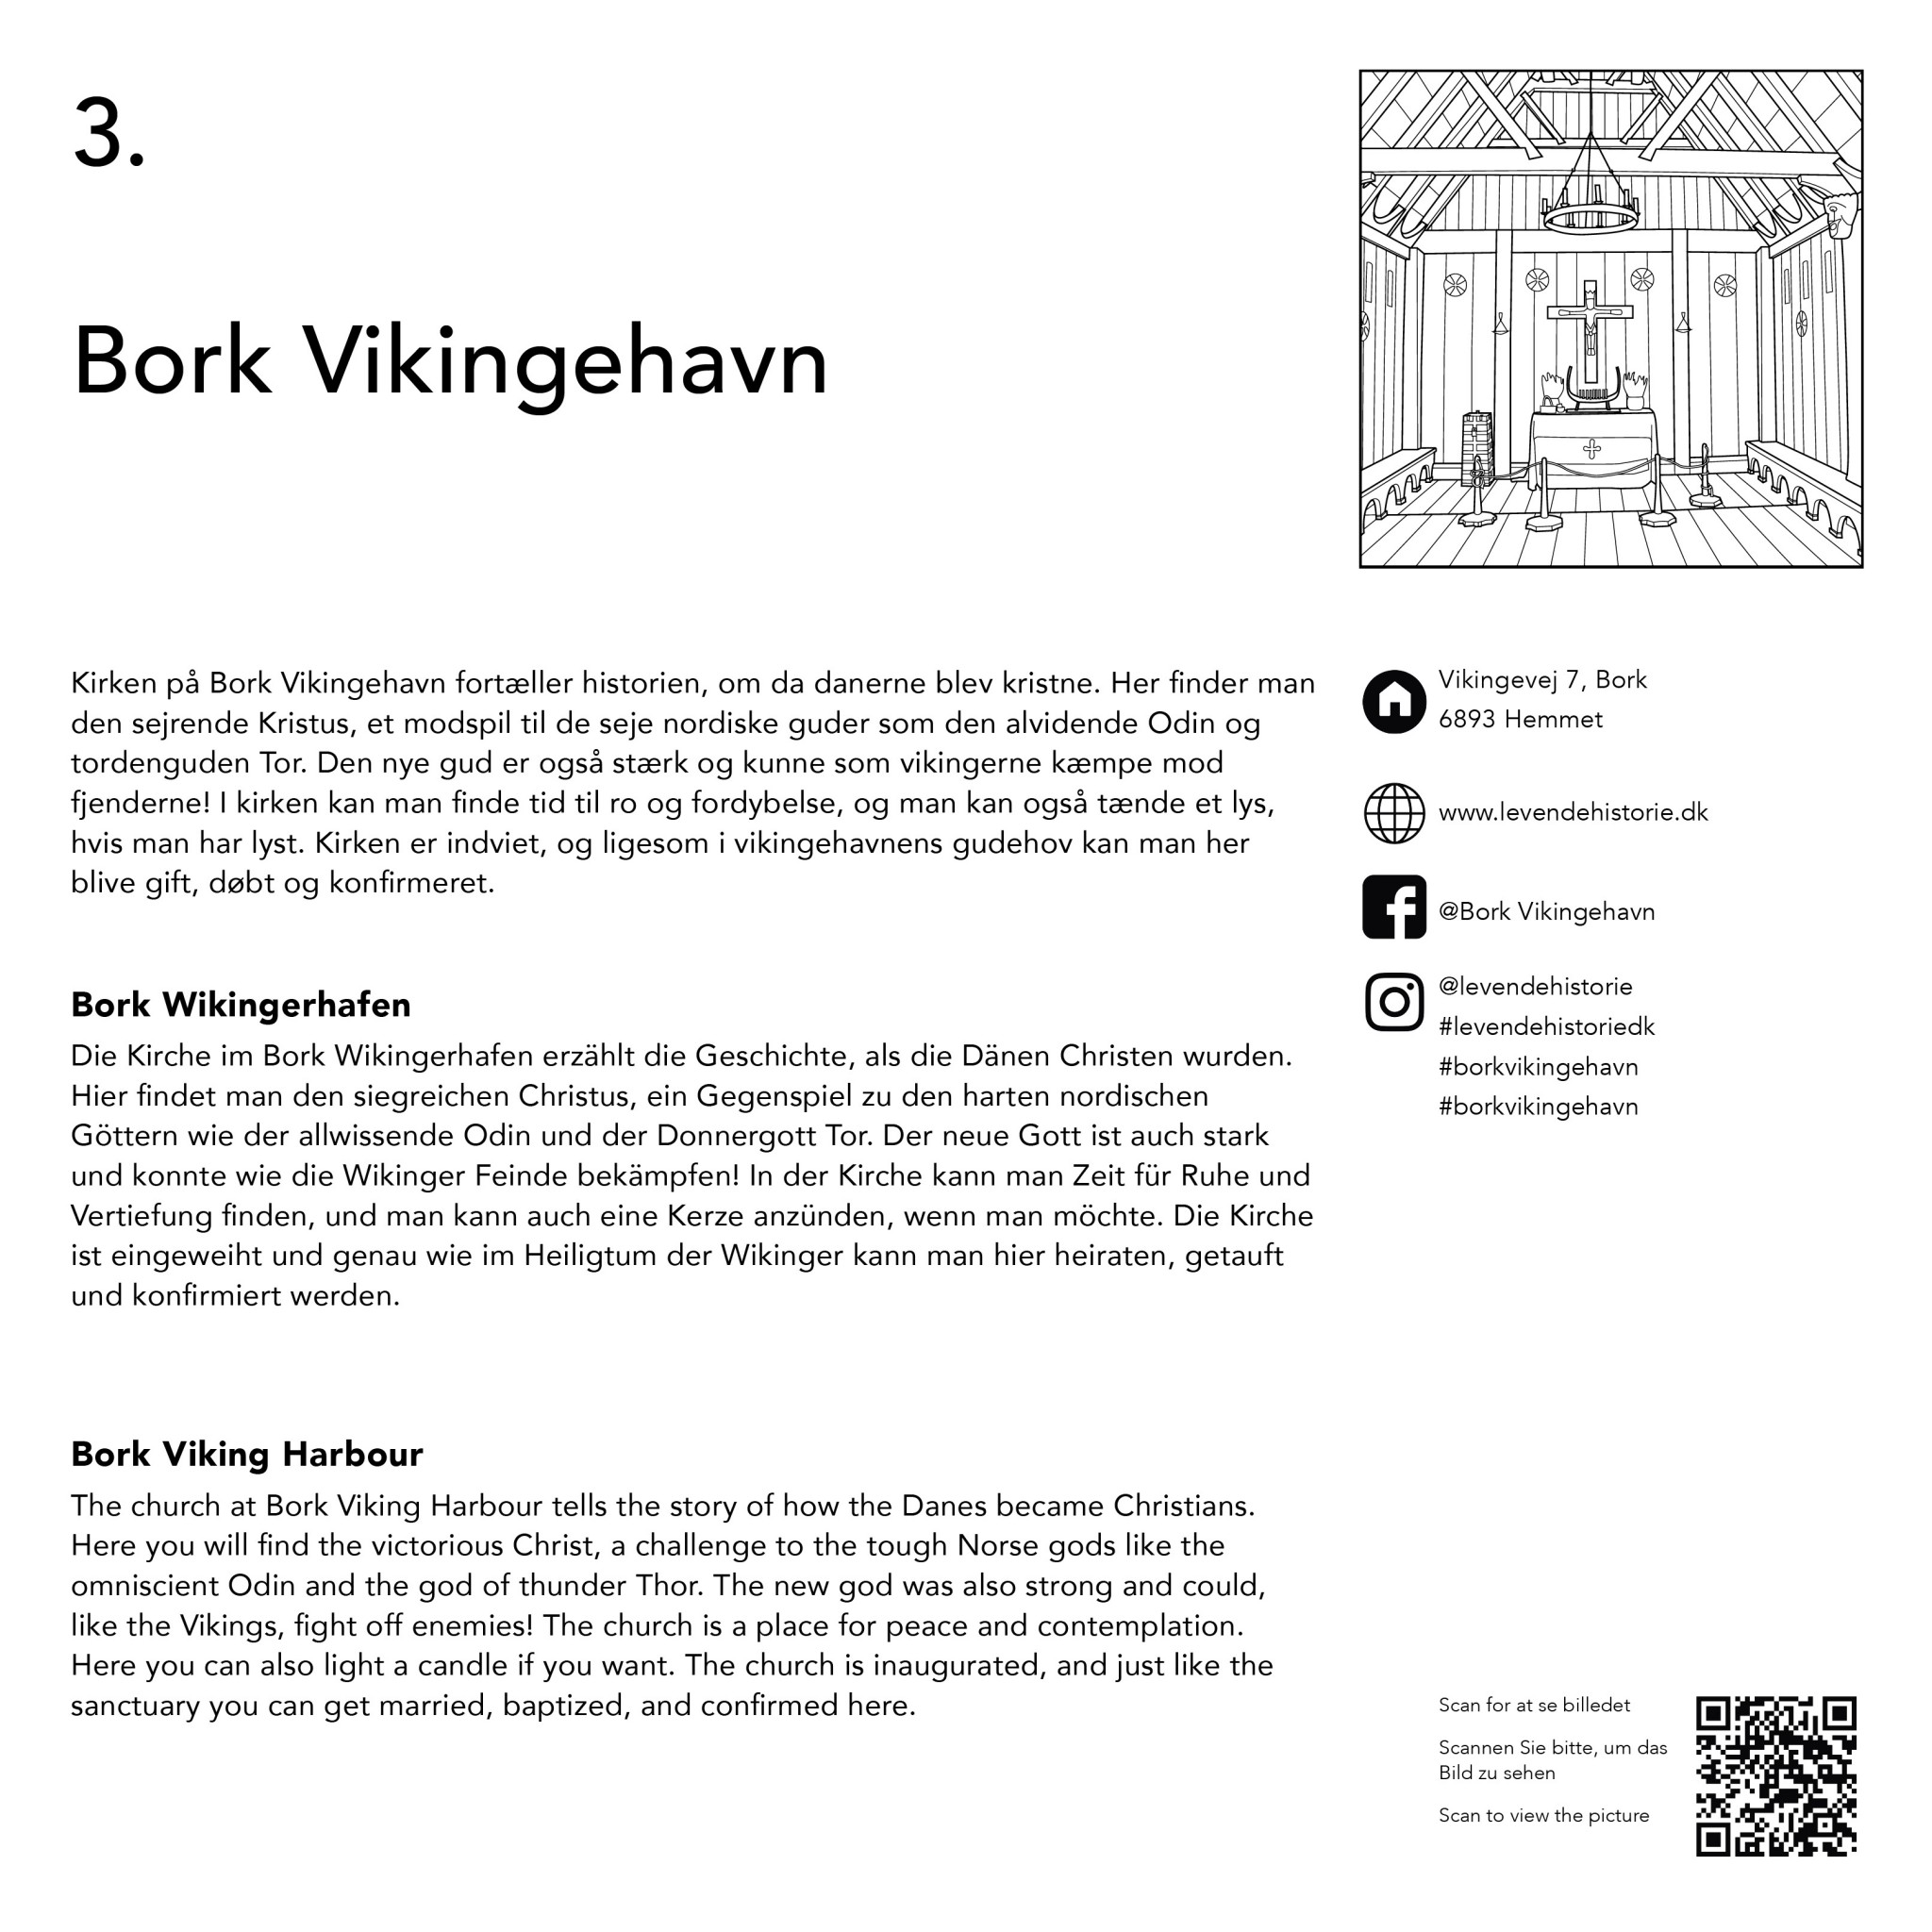 Colour Your Holiday - Sightseeing in Ringkøbing-Skjern -VB- Bork Vikingehavn historie